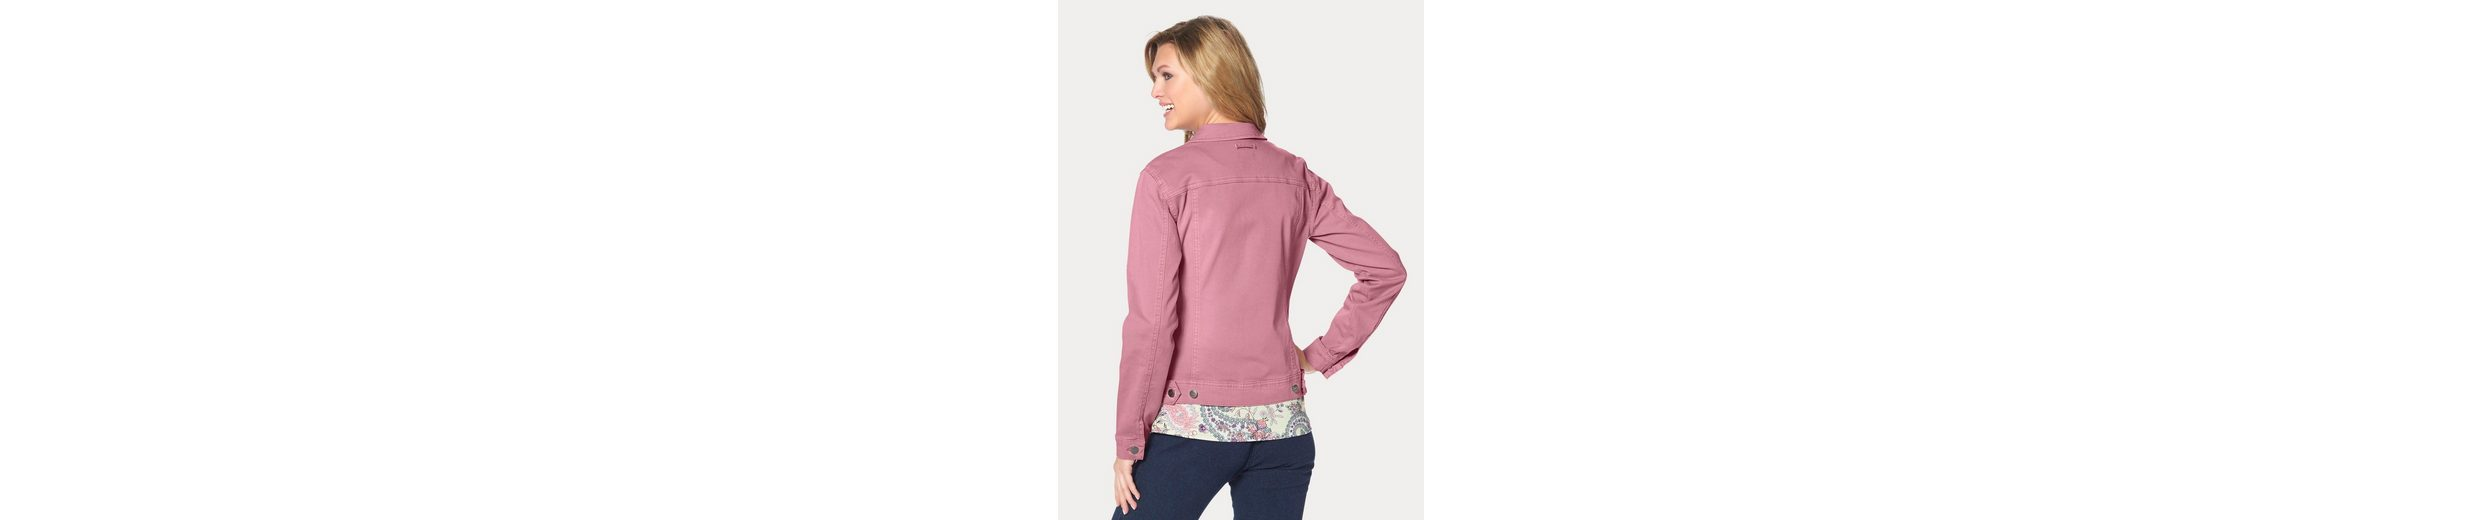 Cheer Jeansjacke, mit Used-Waschung